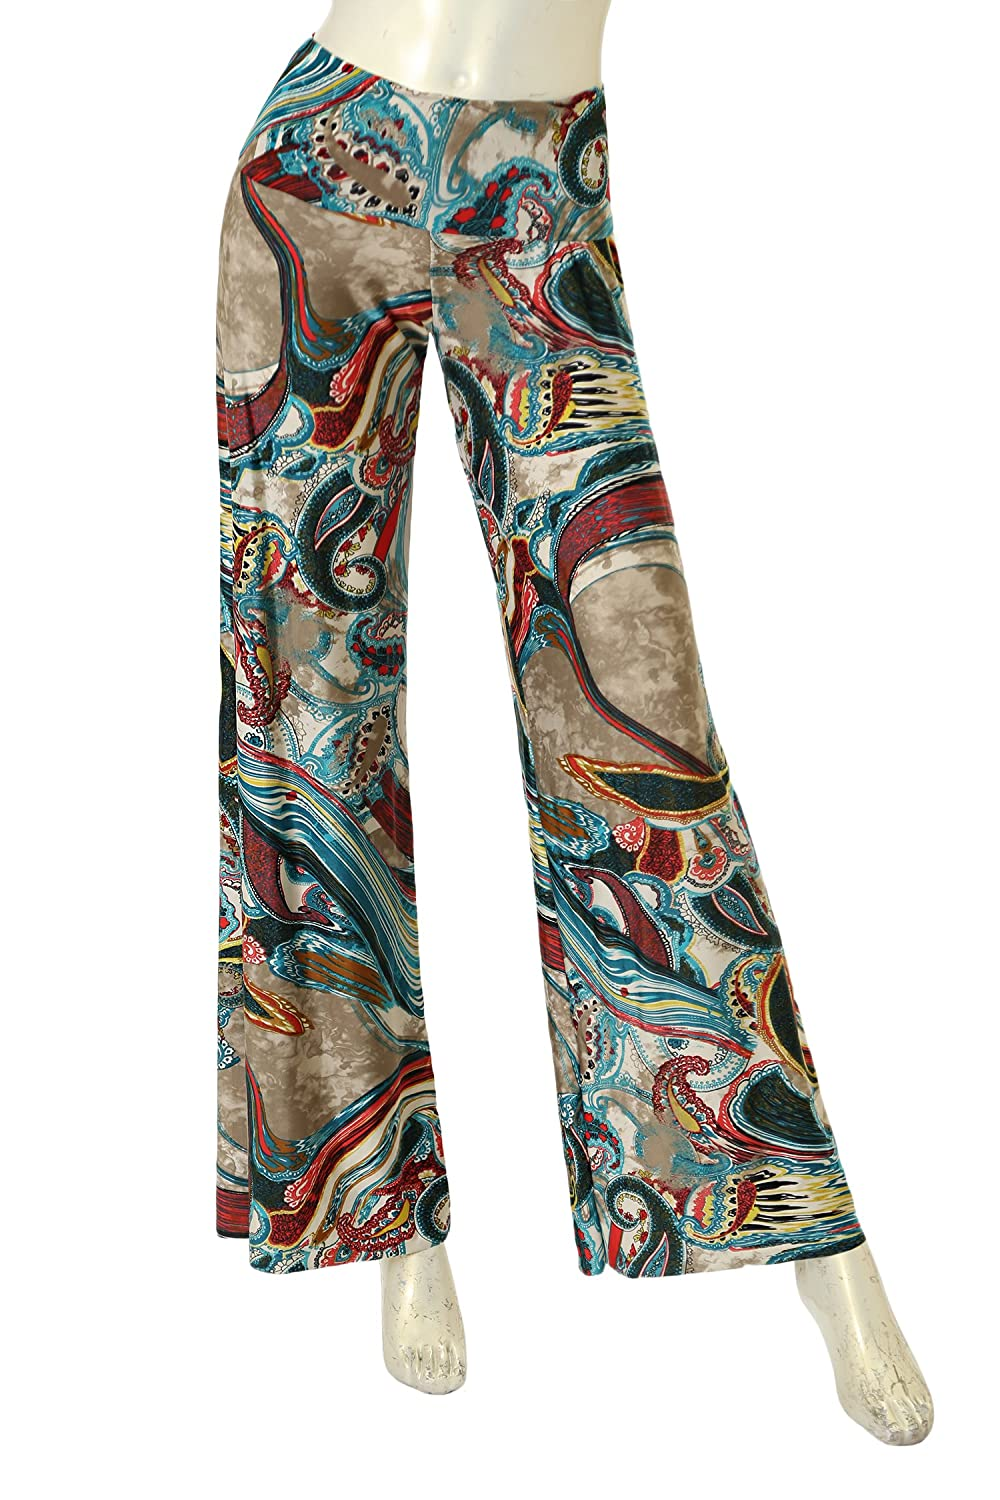 Women's Plus Palazzo Pants Whit Free Laundry Bags - Made in USA - 1